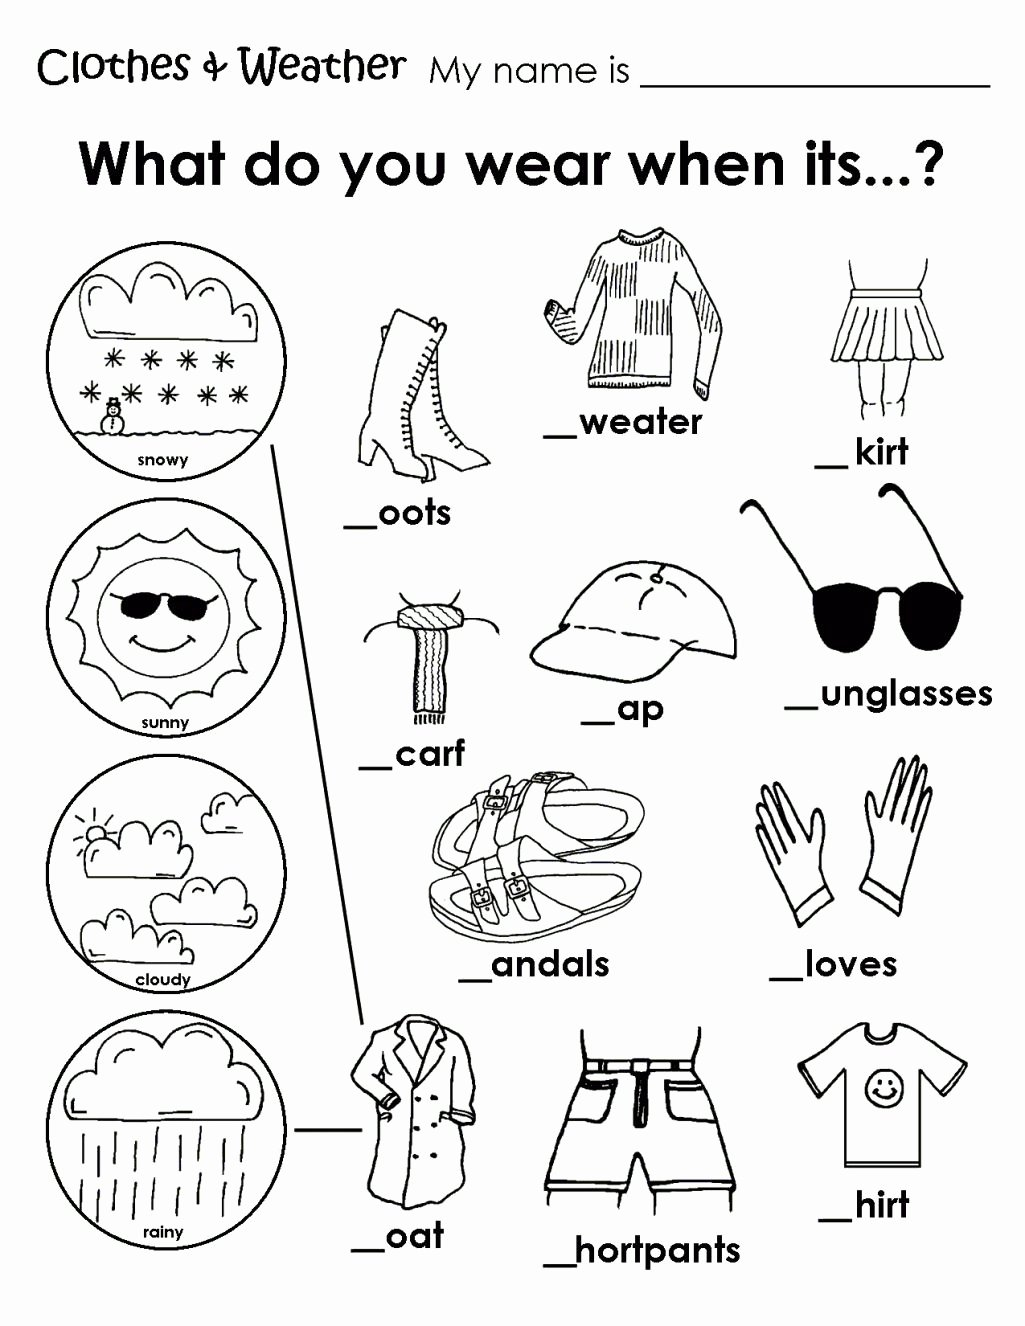 Winter Clothes Worksheets for Preschoolers top Coloring Book Free Coloring Printables forgarten Pages